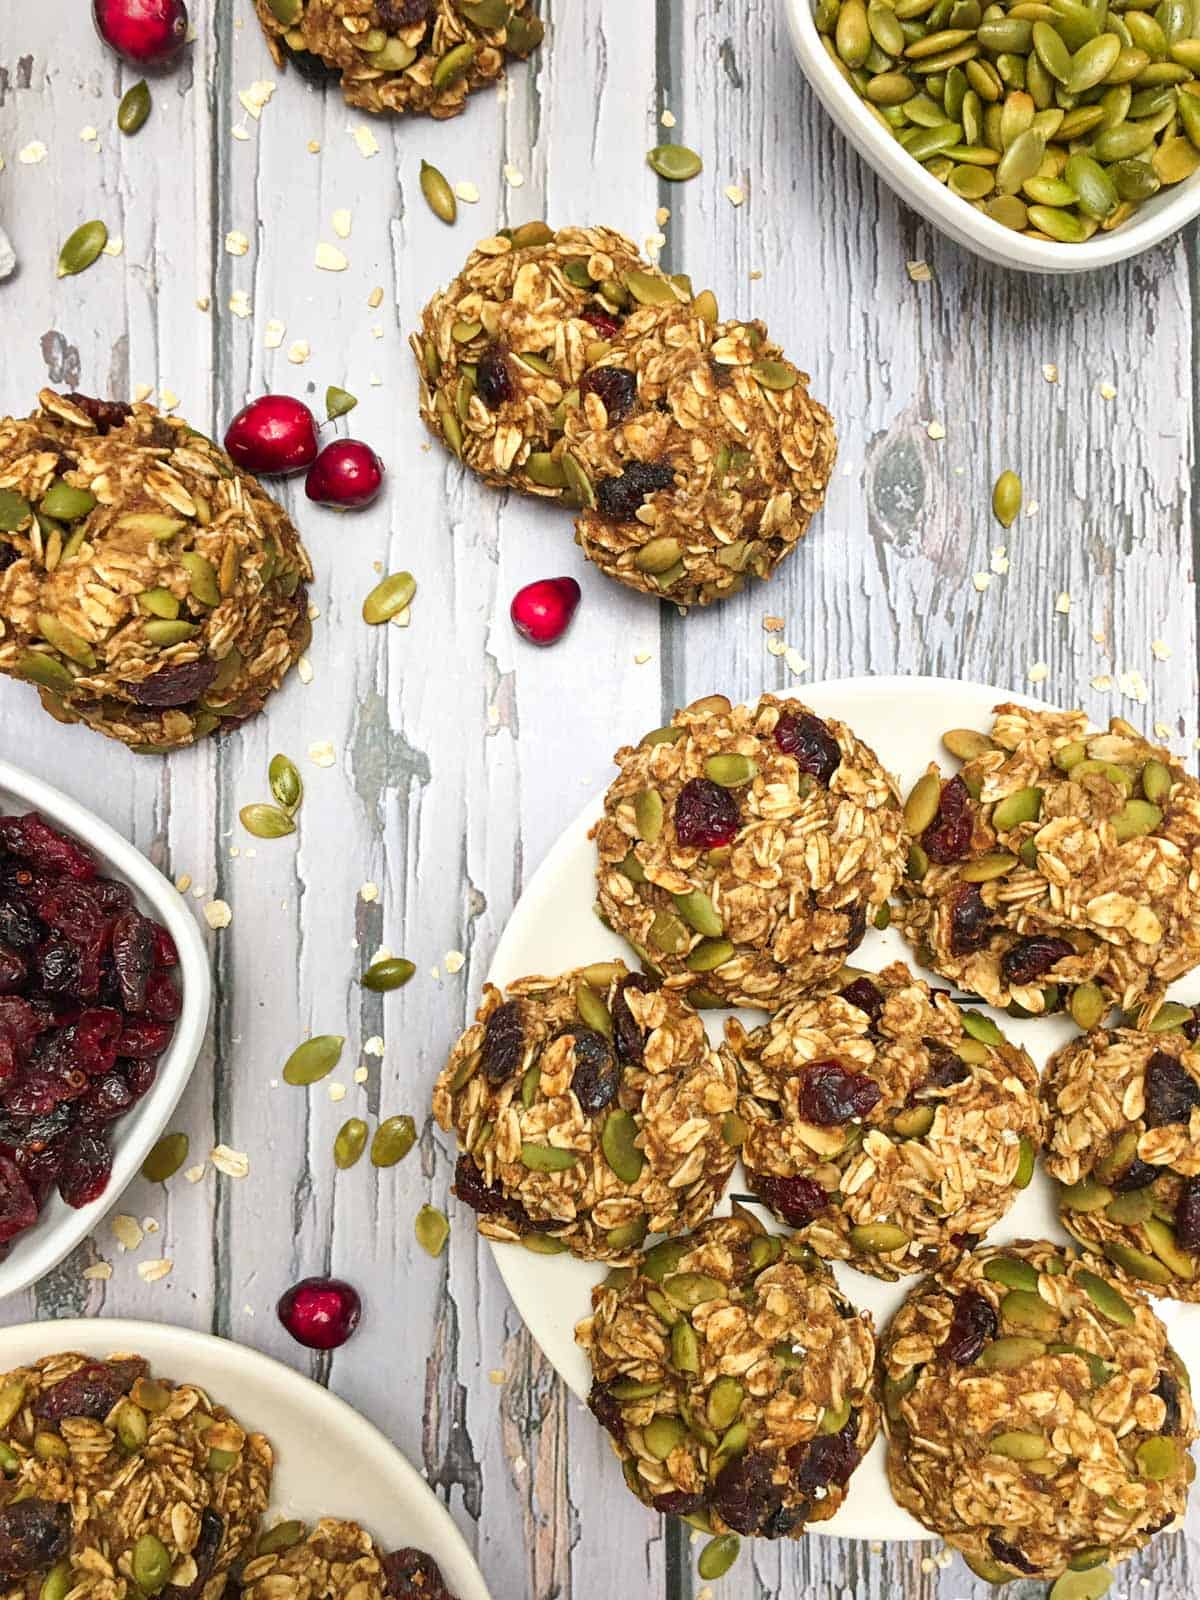 oatmeal cookies with cranberries and pumpkin seeds inside.